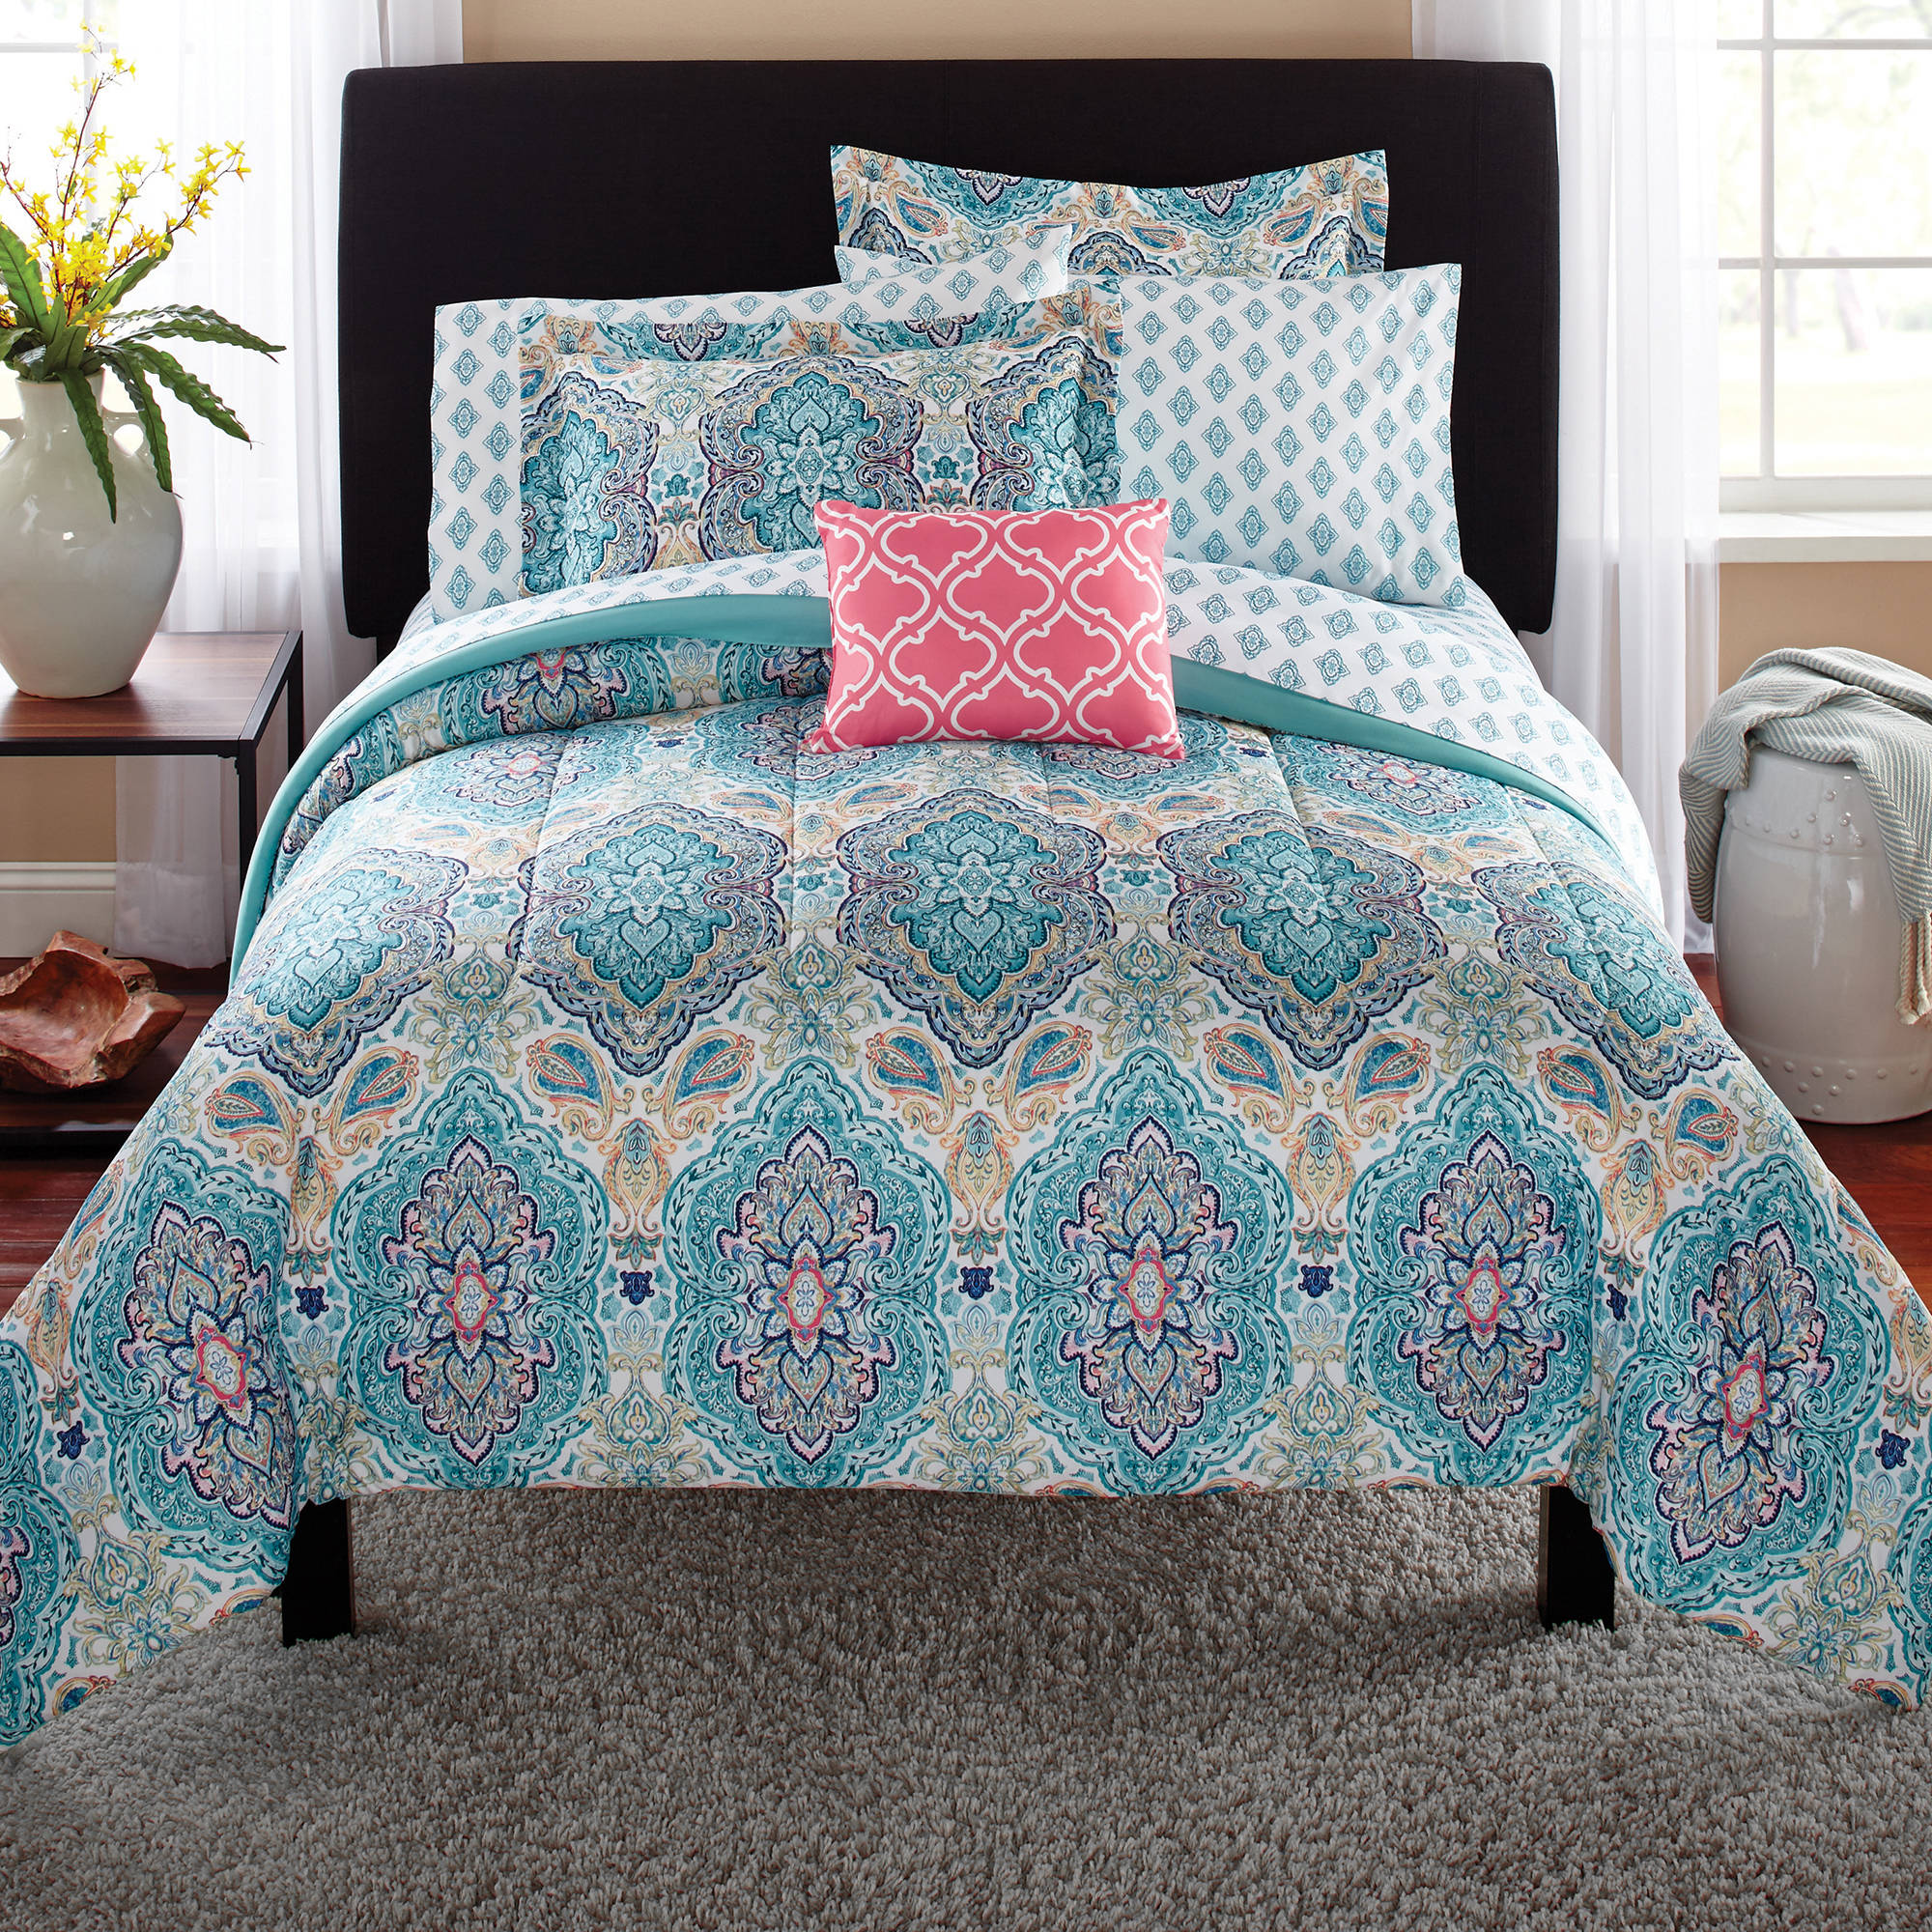 Mainstays Monique Paisley Complete Bedding